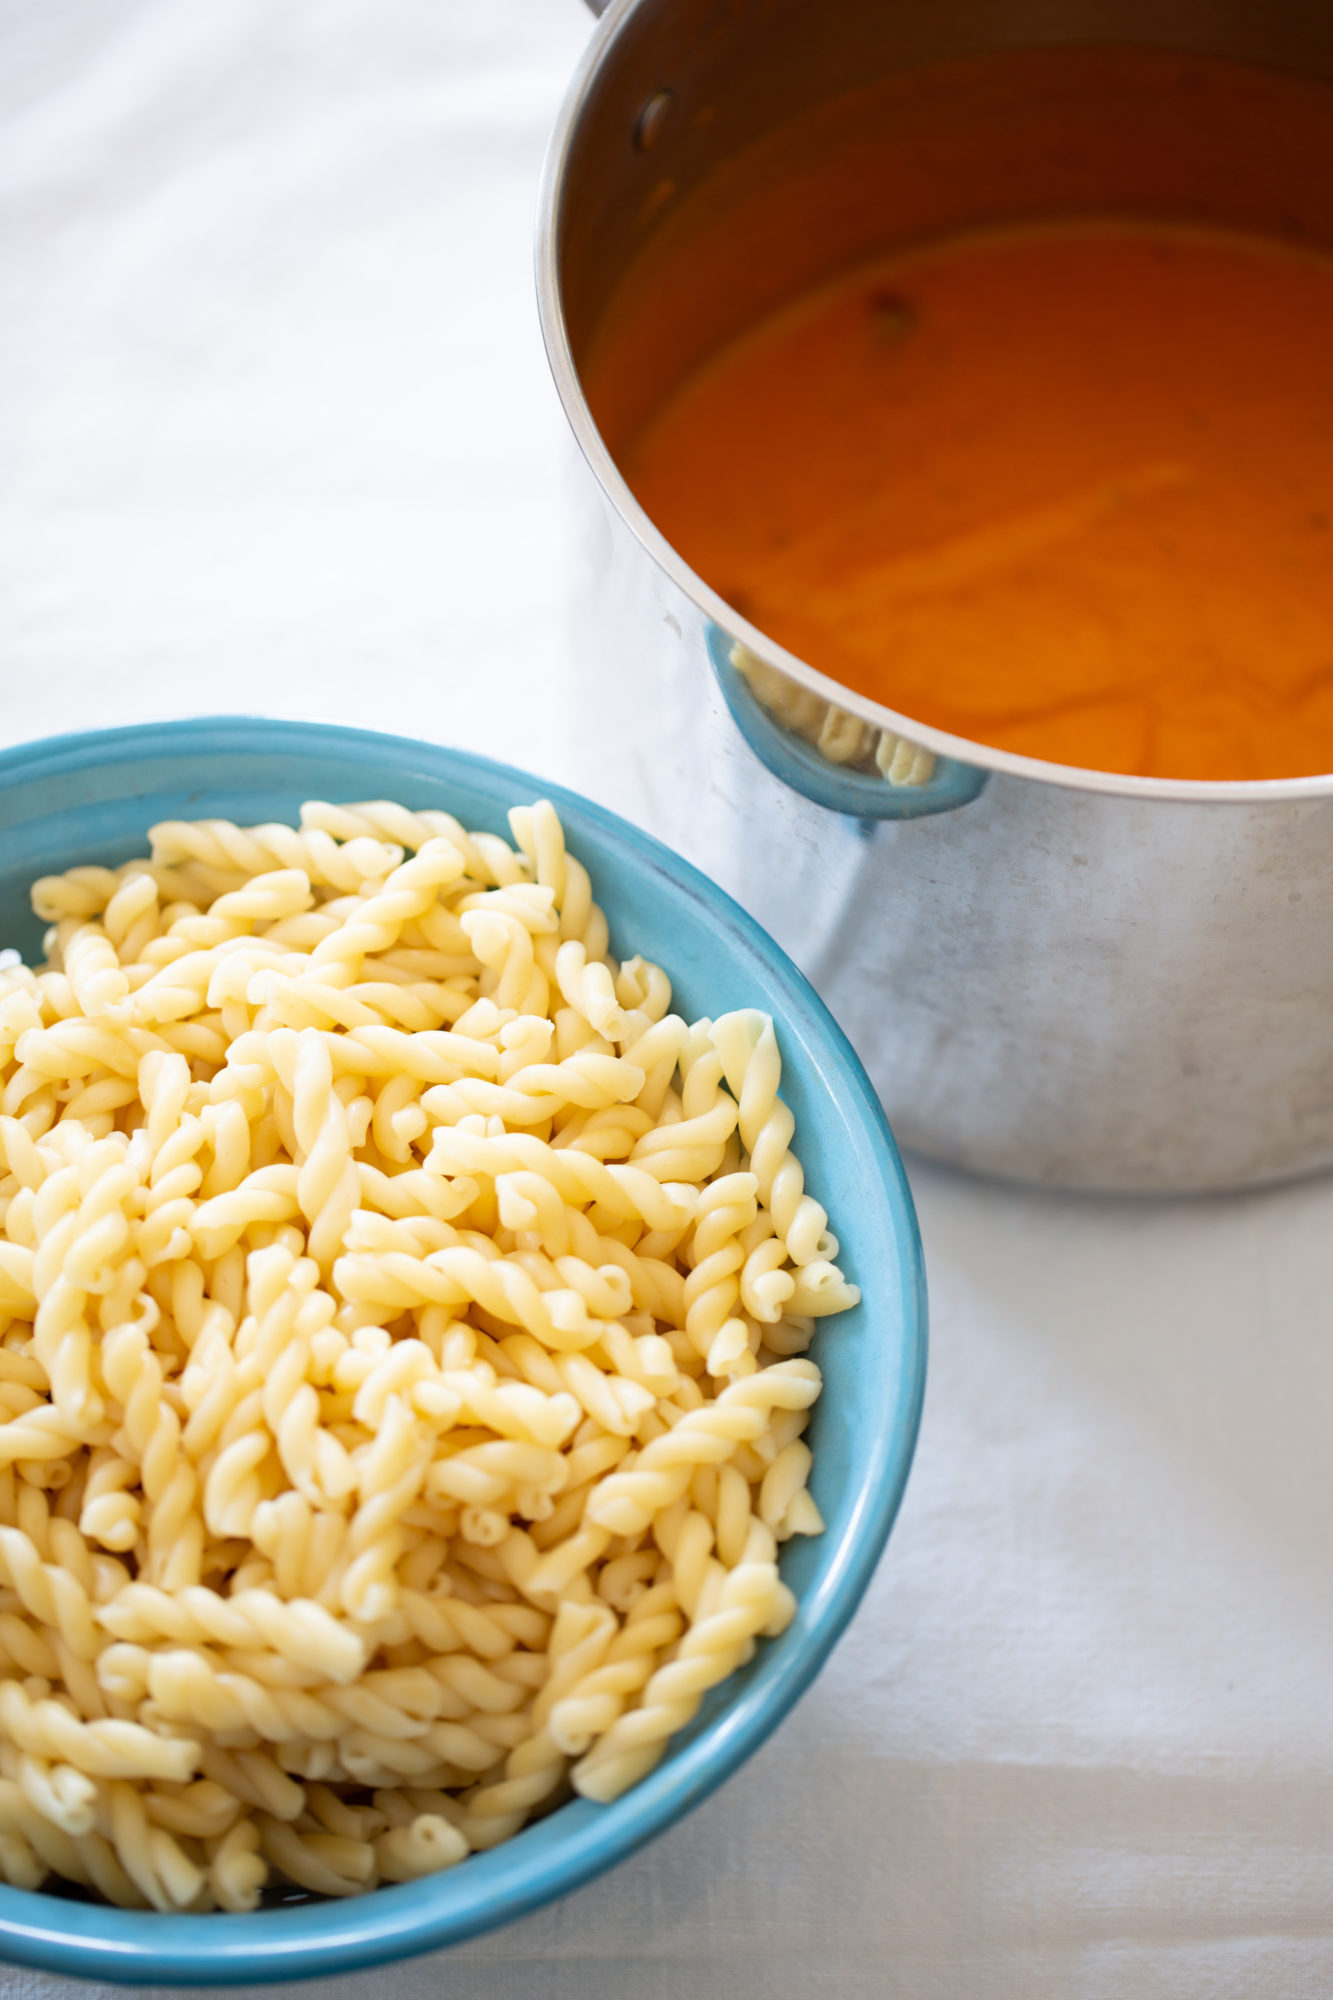 Buttternut squash and tomato sauce in a pot and cooked pasta on the side